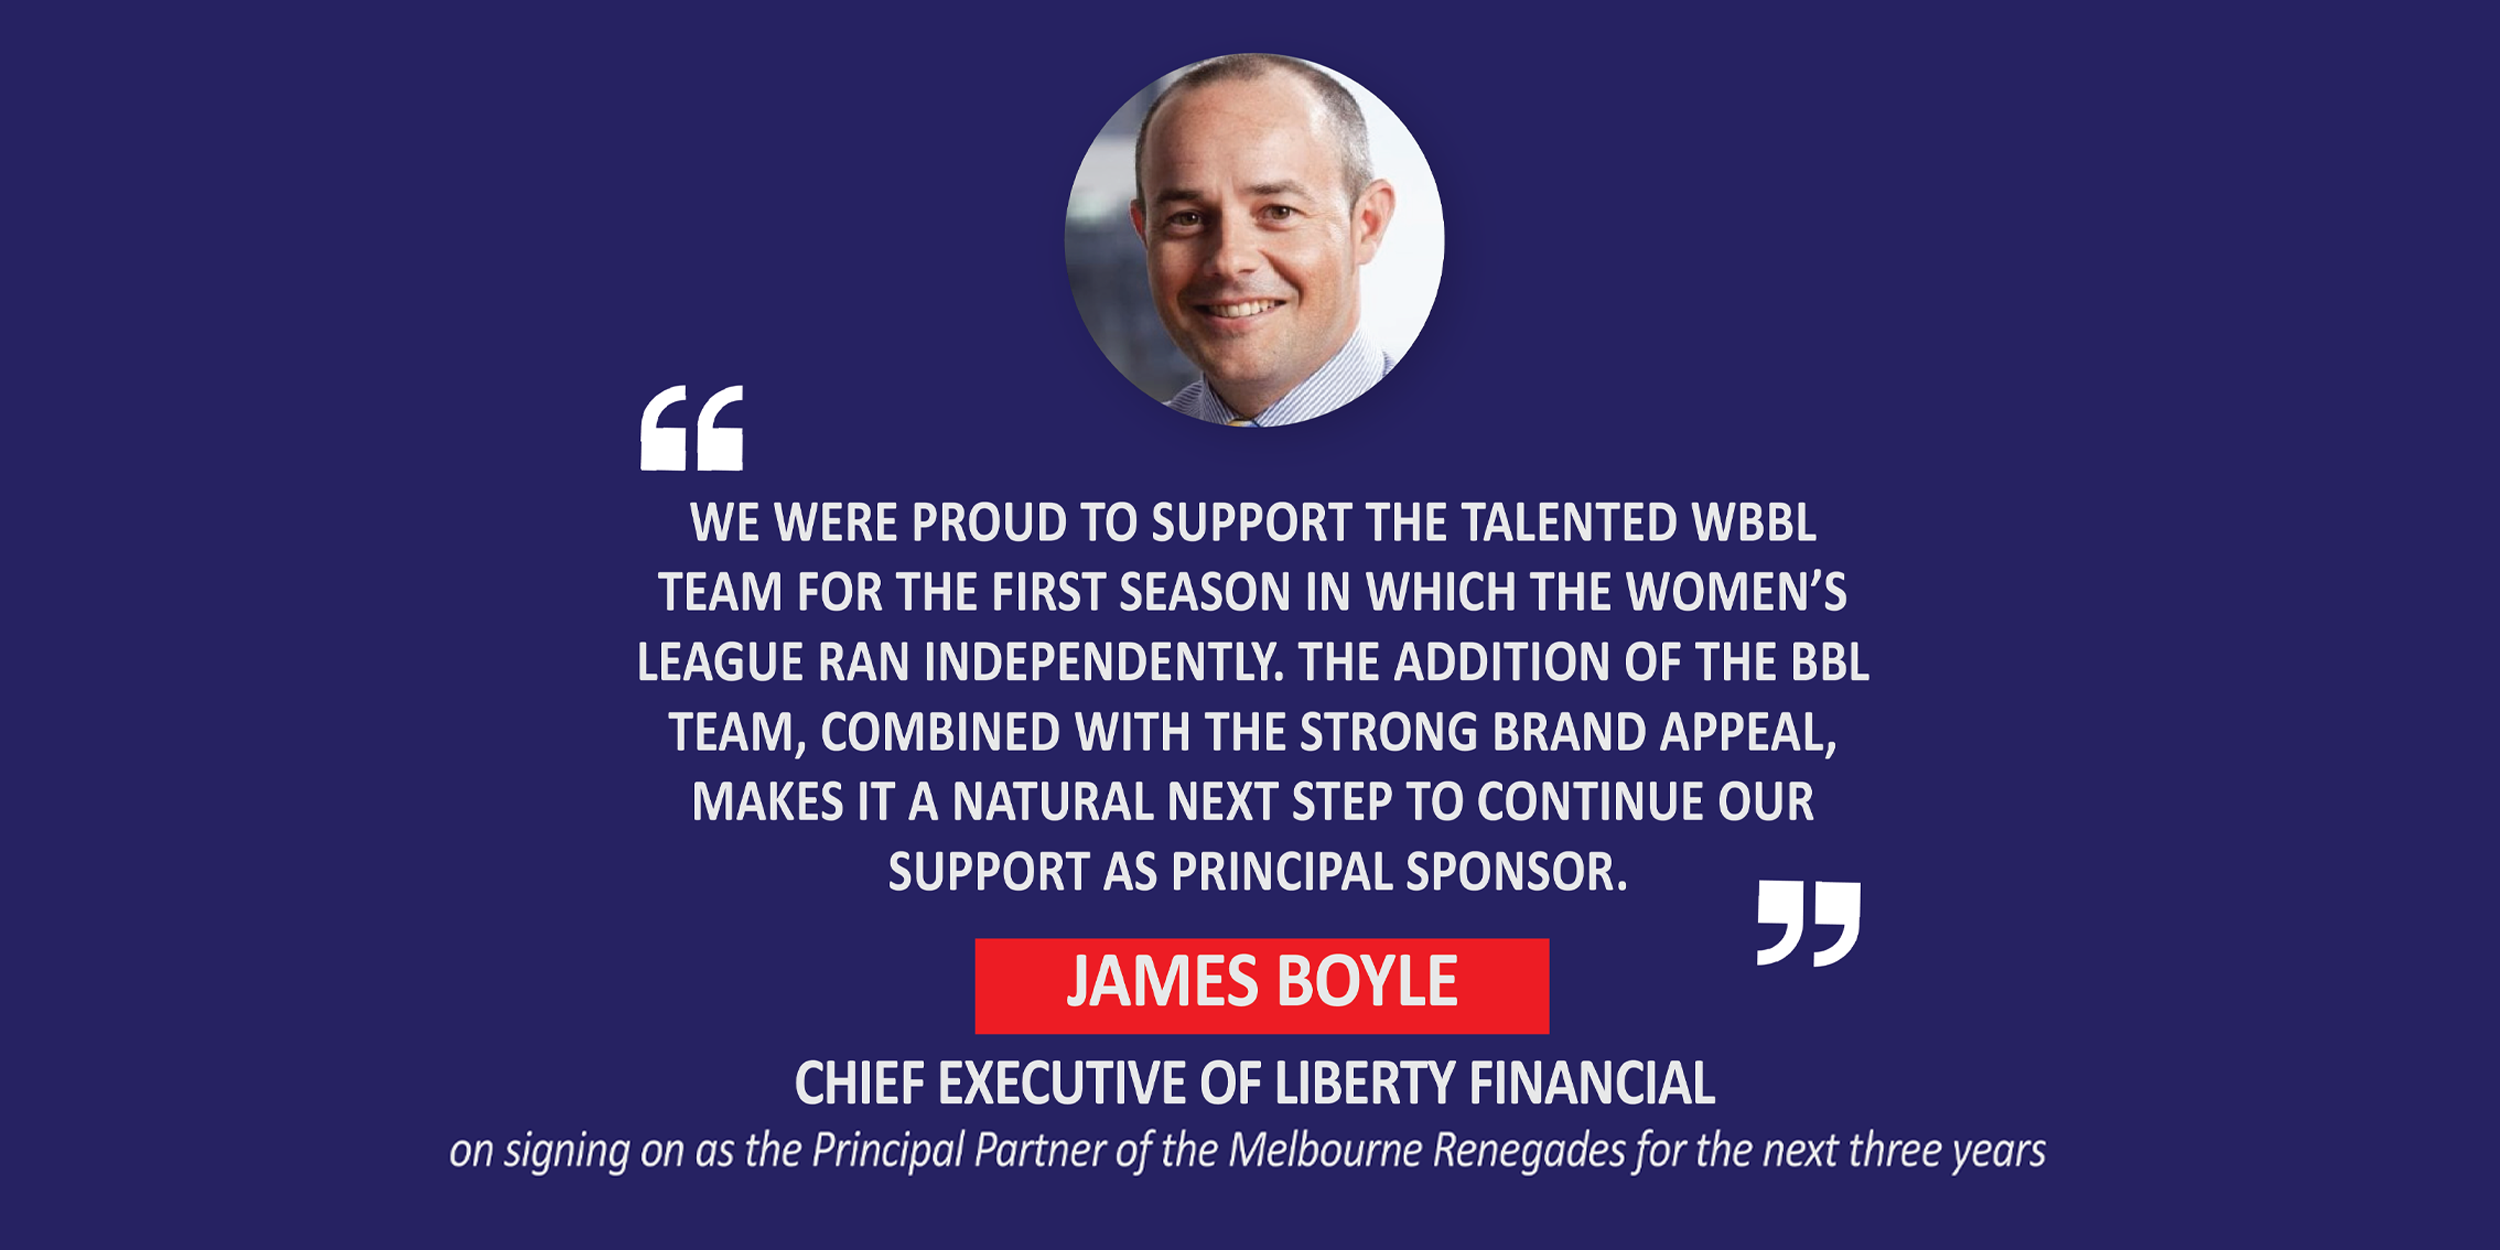 James Boyle, Chief Executive of Liberty Financial on signing on as the Principal Partner of the Melbourne Renegades for the next three years